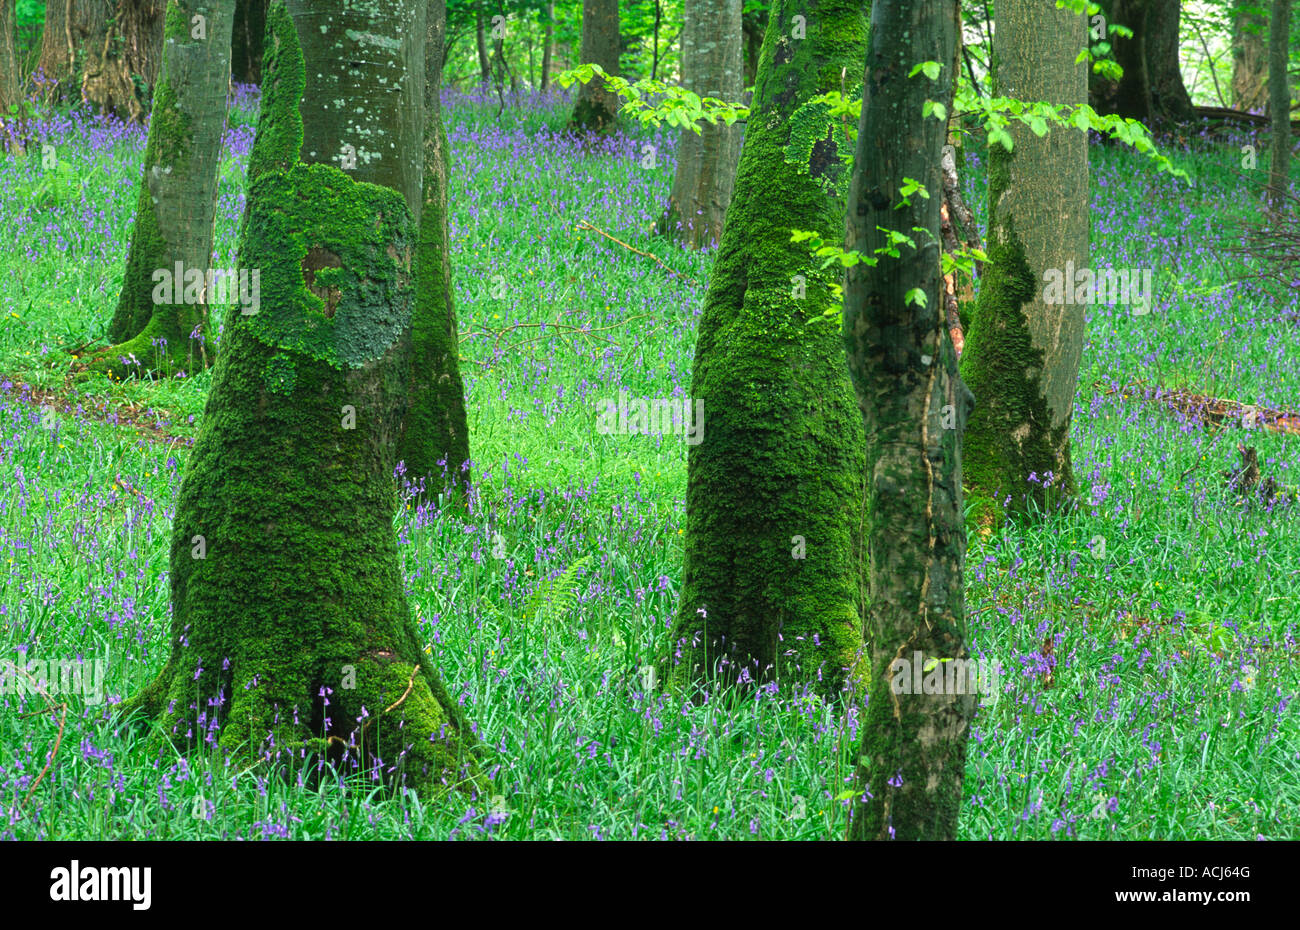 Spring bluebells and moss-covered tree trunks in a beech woodland in Killarney National Park. County Kerry, Ireland. - Stock Image